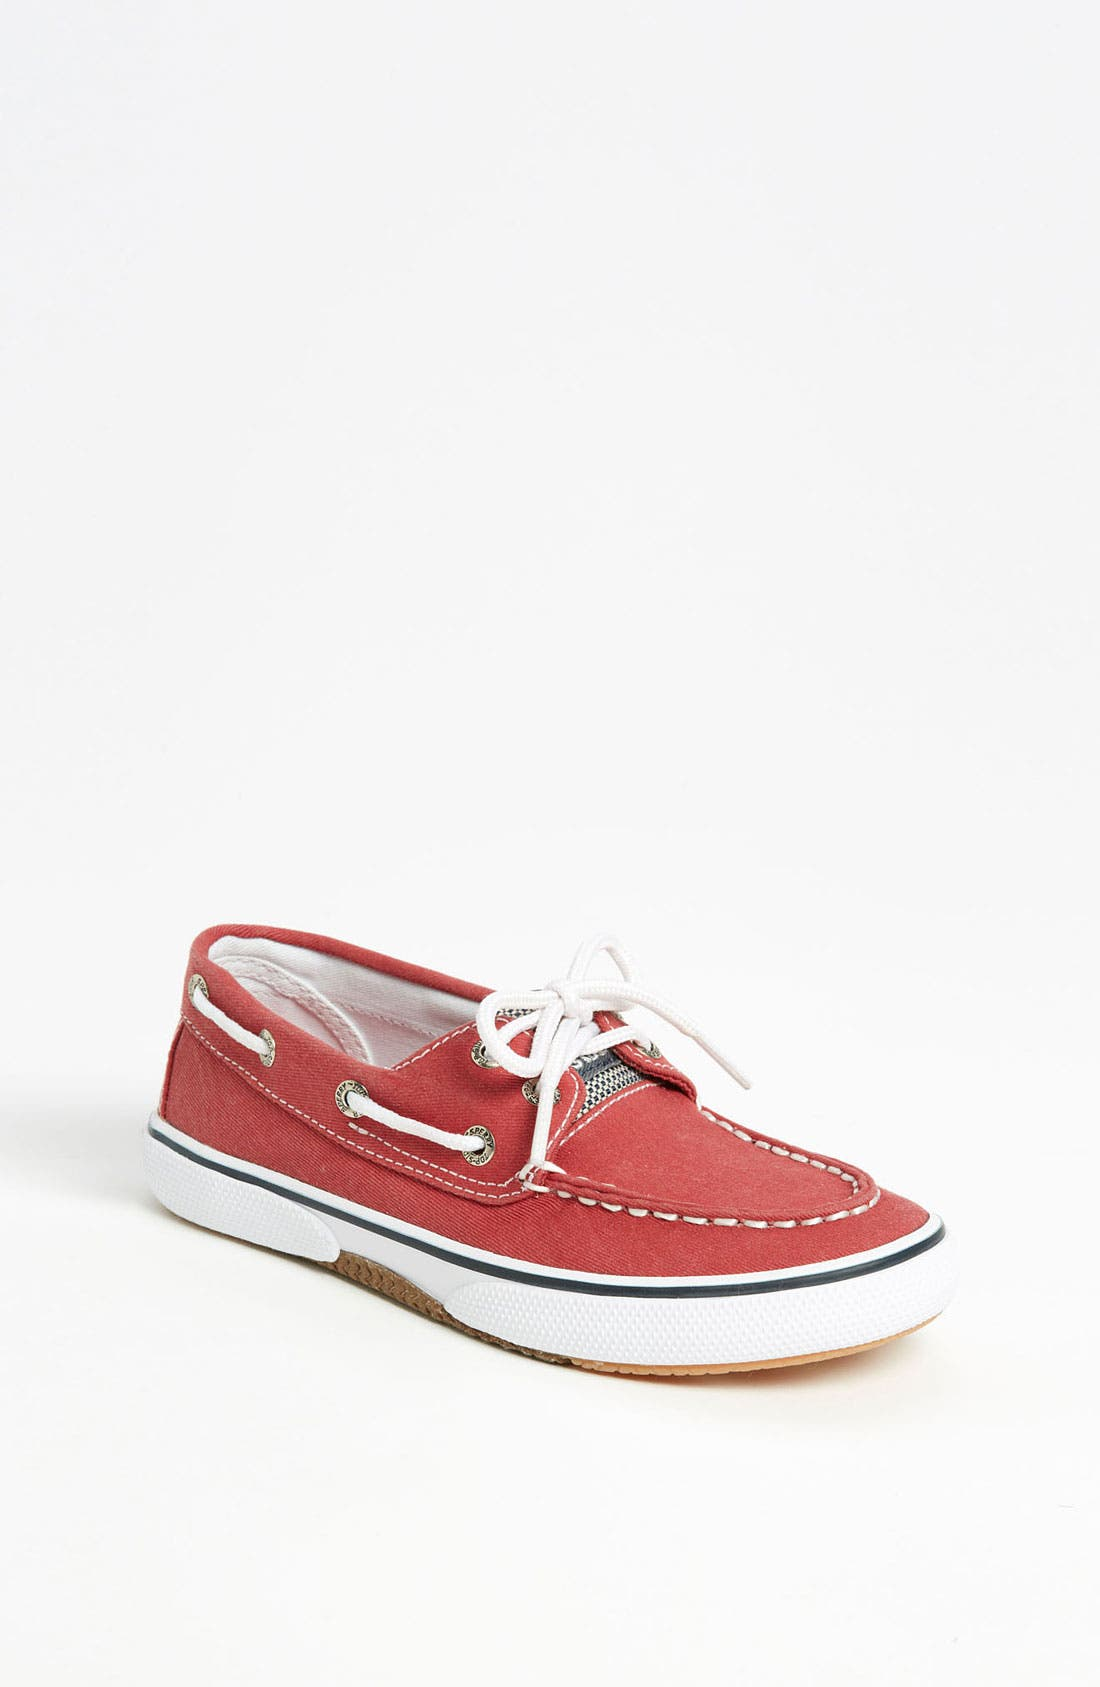 Main Image - Sperry Top-Sider® Kids 'Halyard' Boat Shoe (Walker, Toddler, Little Kid & Big Kid)